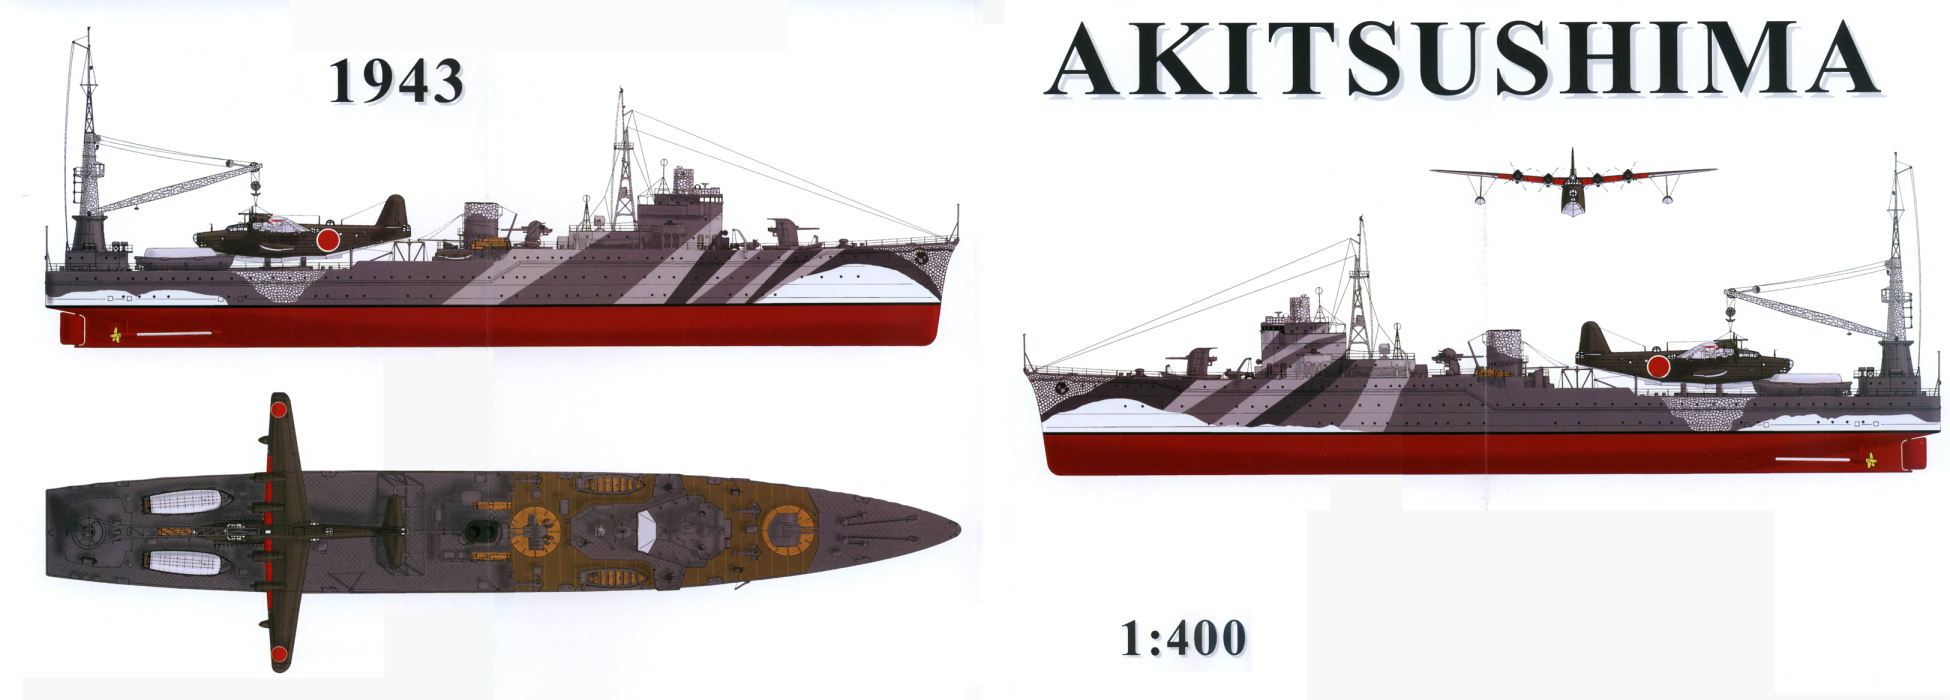 coron_japanese-seaplane-carrier-akitushima-scale-drawing-0a